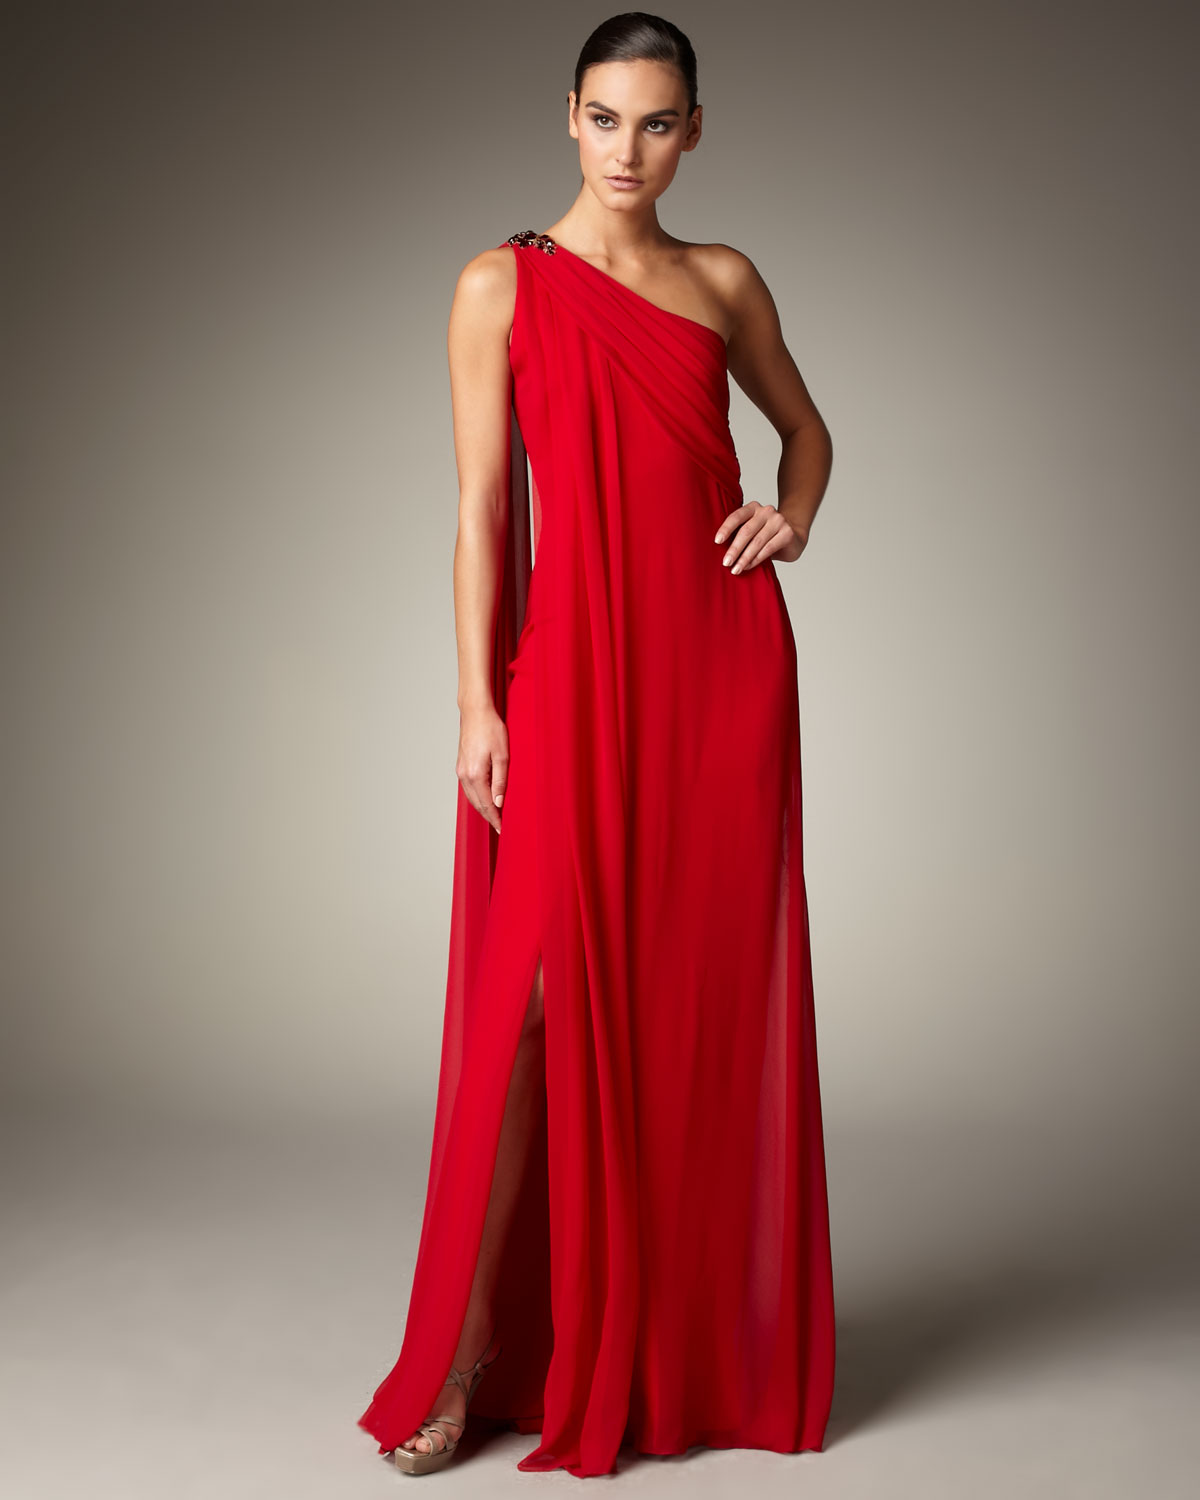 Lyst - Notte By Marchesa Bejeweled One-shoulder Gown in Red